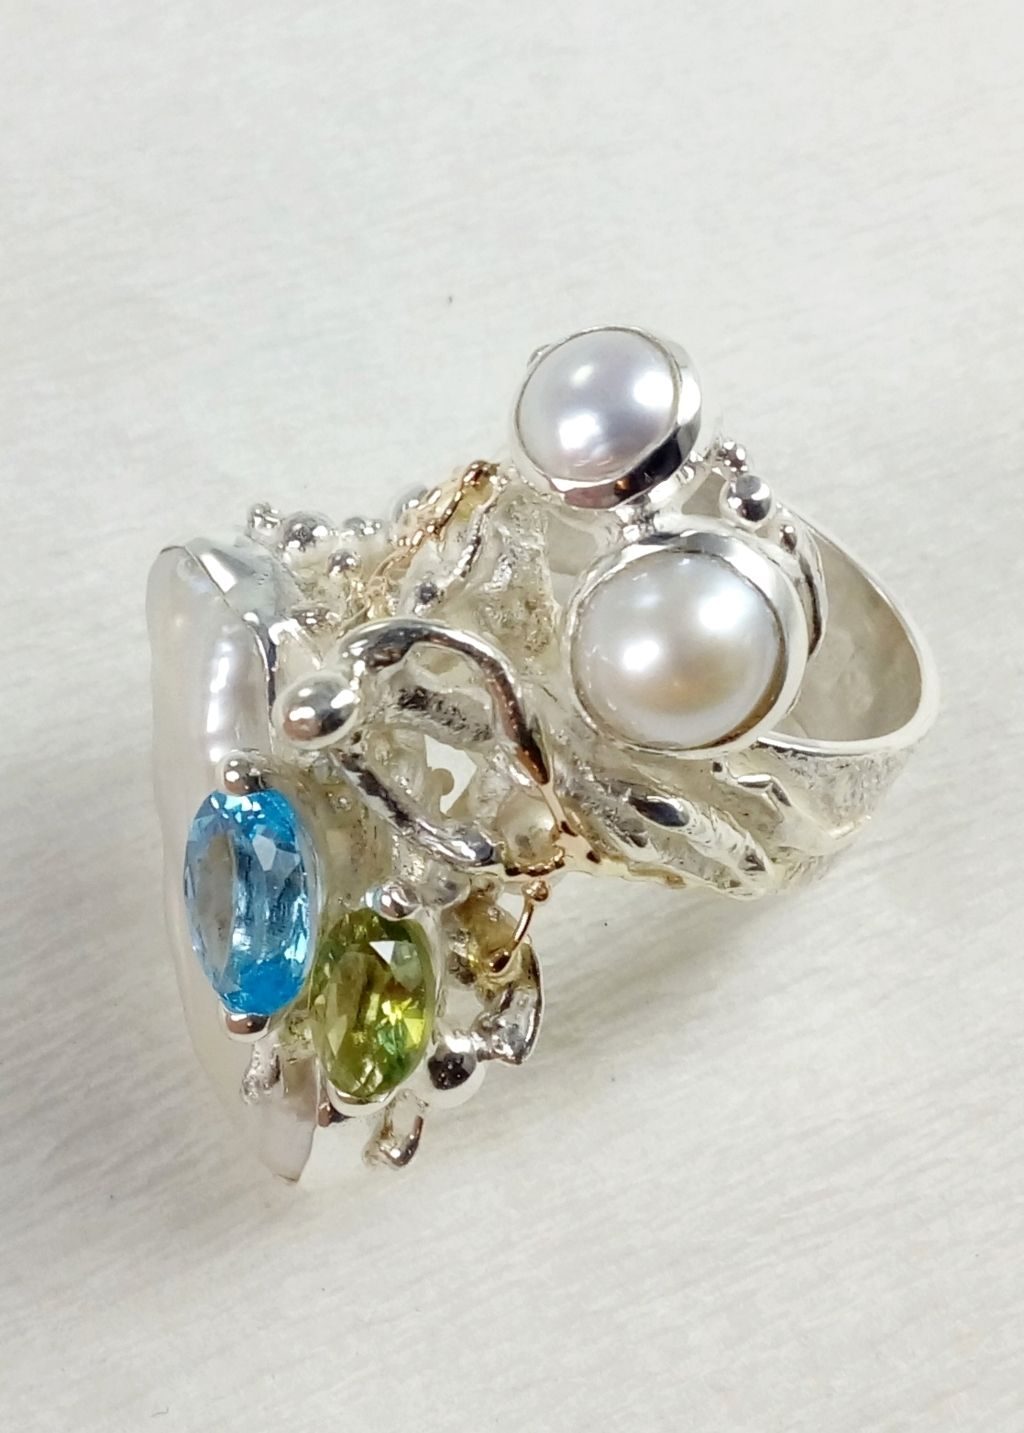 gregory pyra piro square ring #5632, sculptural jewellery, sculptural ring, sterling silver and 14k gold artisan jewellery, ring with blue topaz, peridot, and pearl, jewellery with peridot and blue topaz, sterling silver and 14 karat gold ring